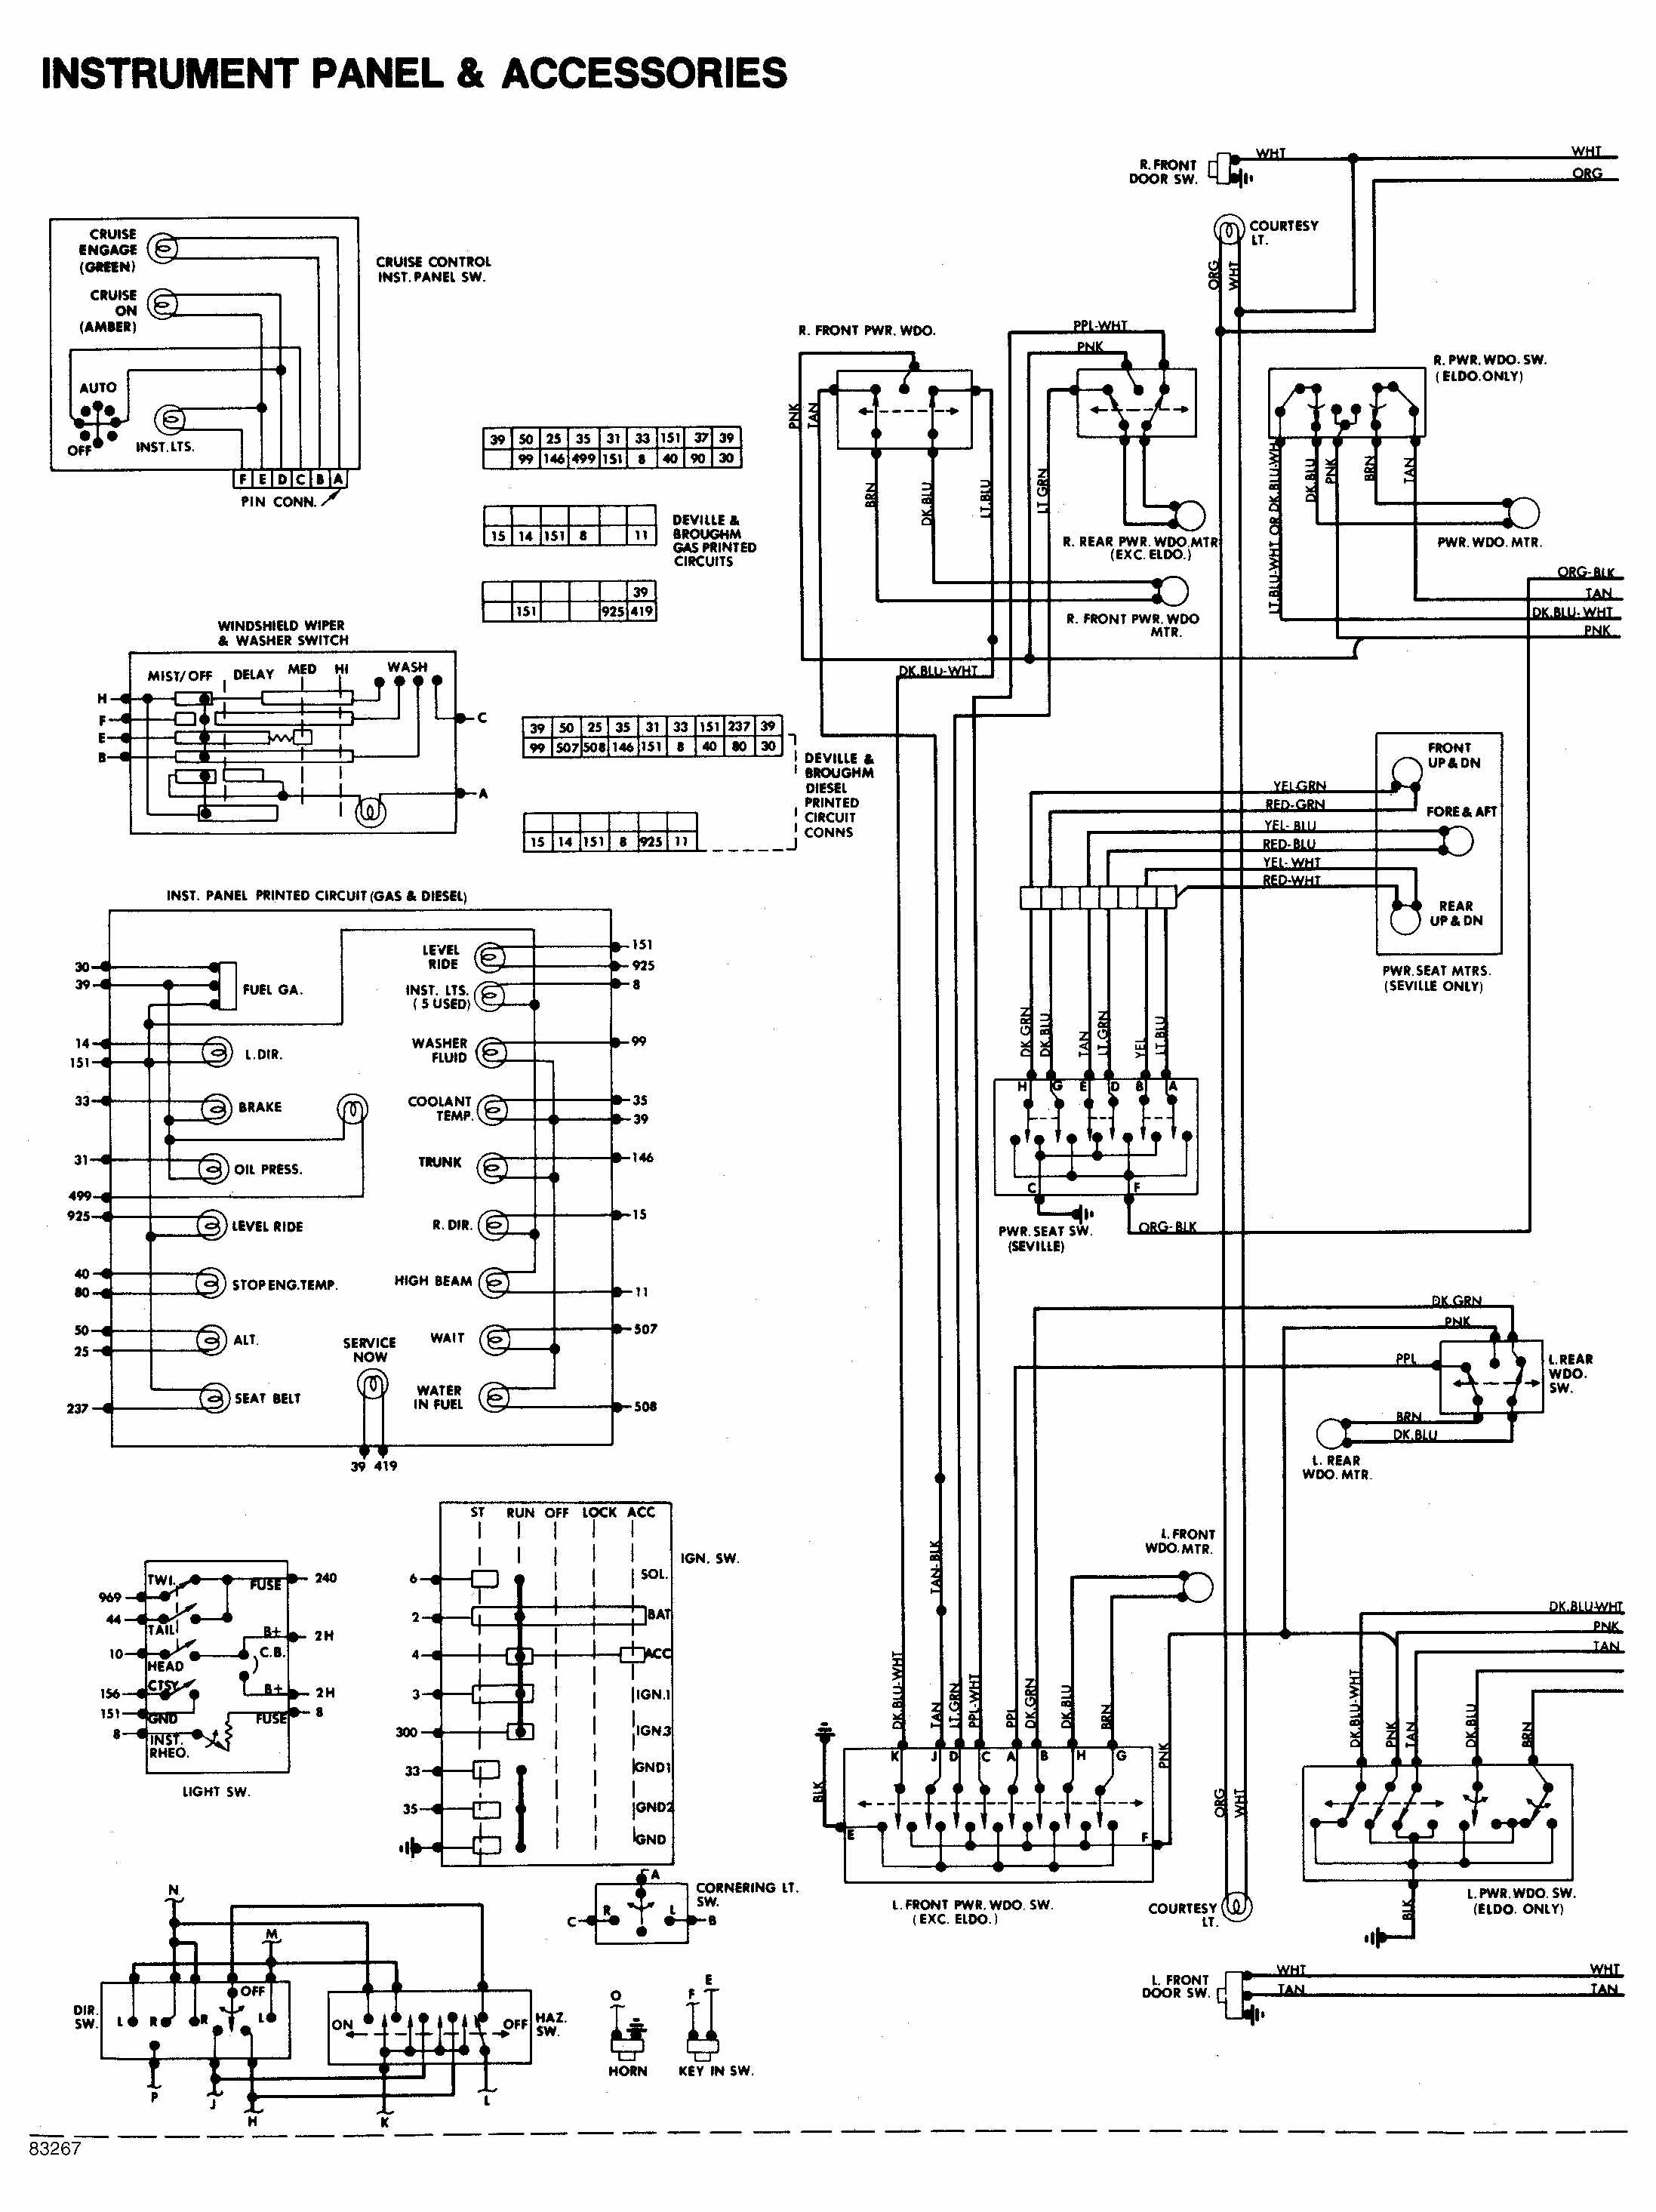 instrument panel and accessories wiring diagram of 1984 cadillac deville cadillac wiring harness ram truck wiring harness \u2022 wiring diagrams  at n-0.co